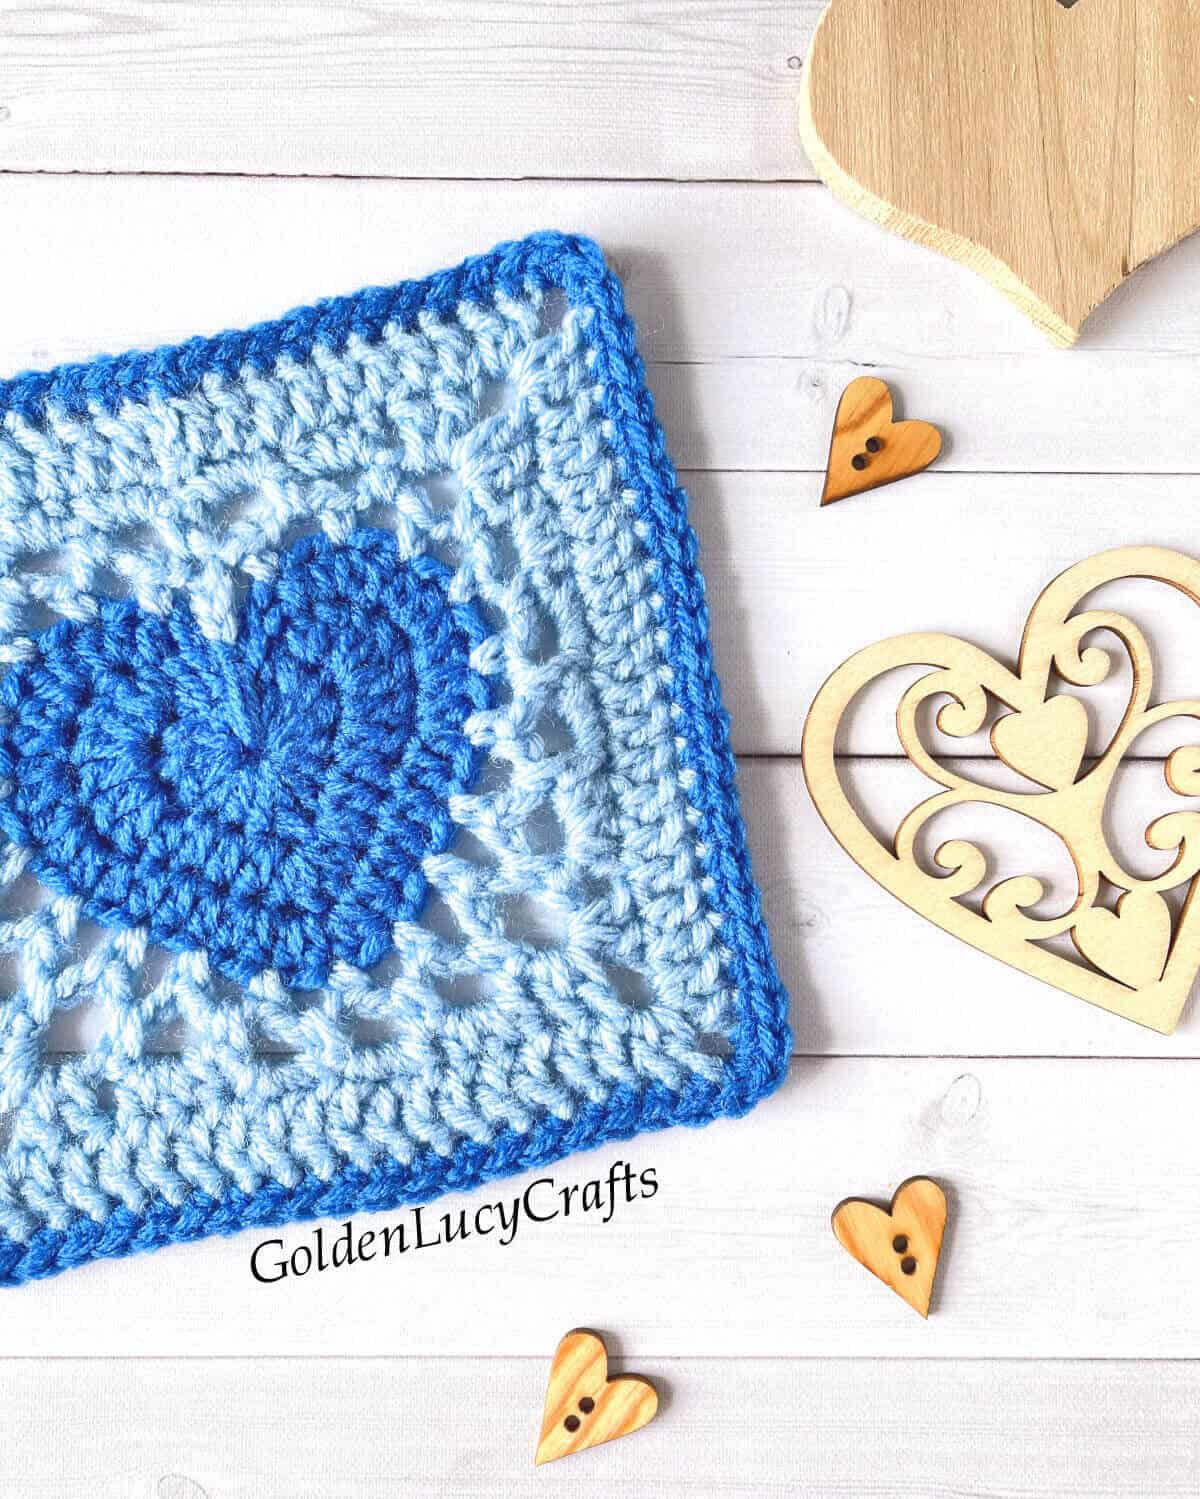 Blue crochet heart granny square close up picture, wooden hearts next to it.